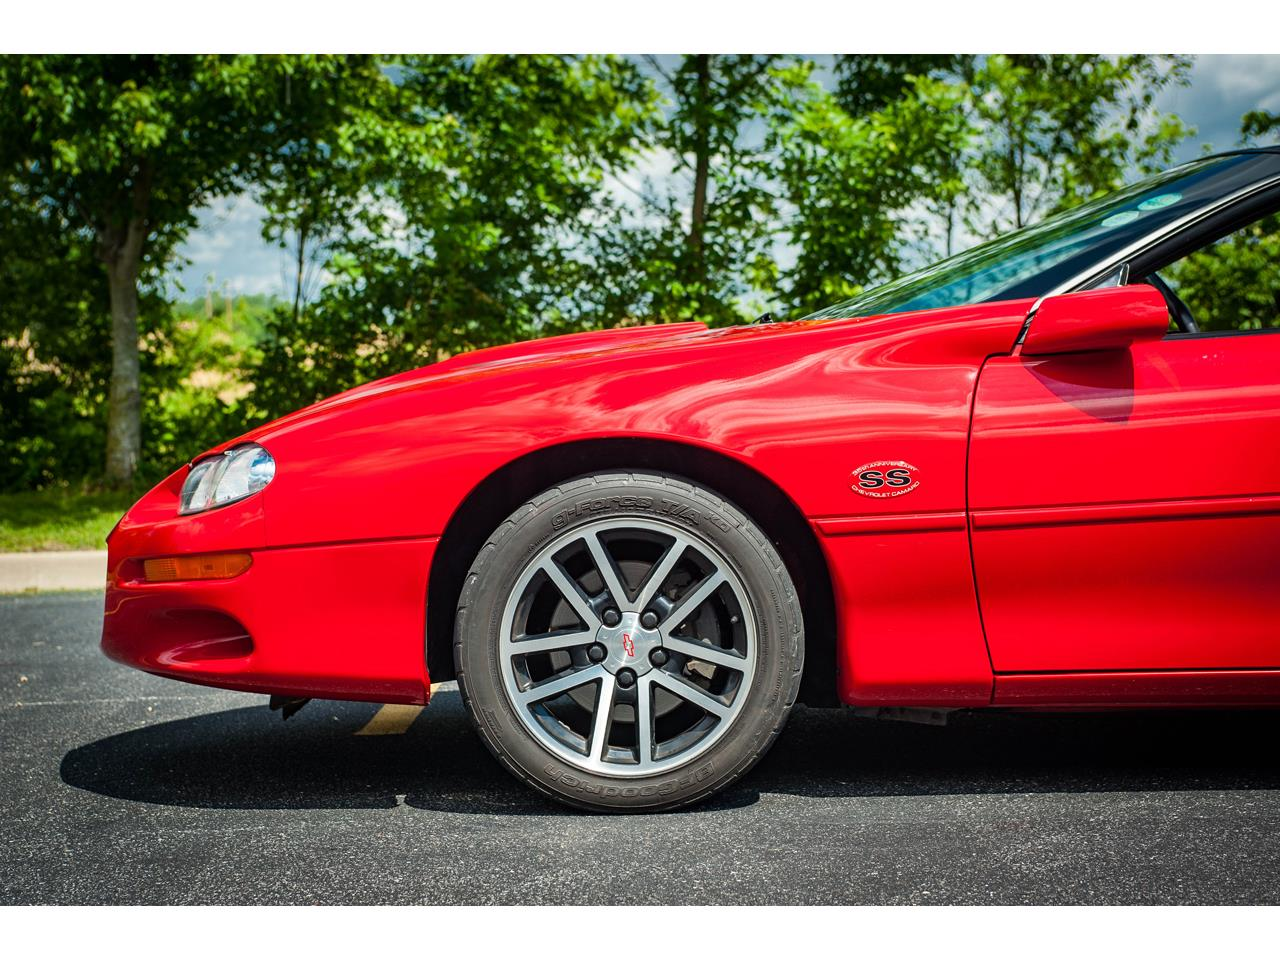 Large Picture of '02 Camaro located in Illinois - $33,500.00 Offered by Gateway Classic Cars - St. Louis - QB9Z